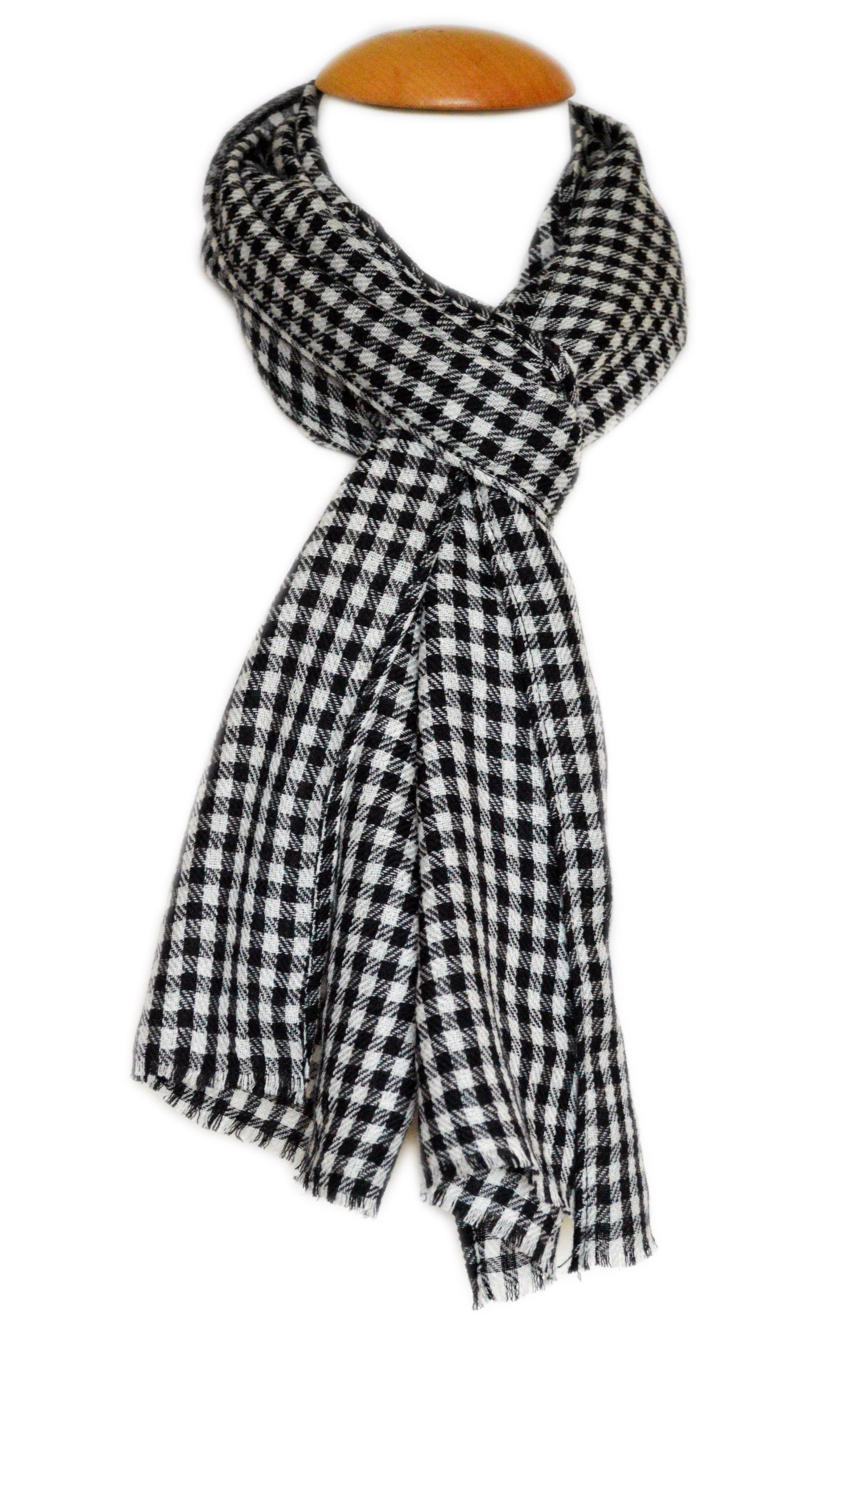 Monochrome Checked Wool Scarf